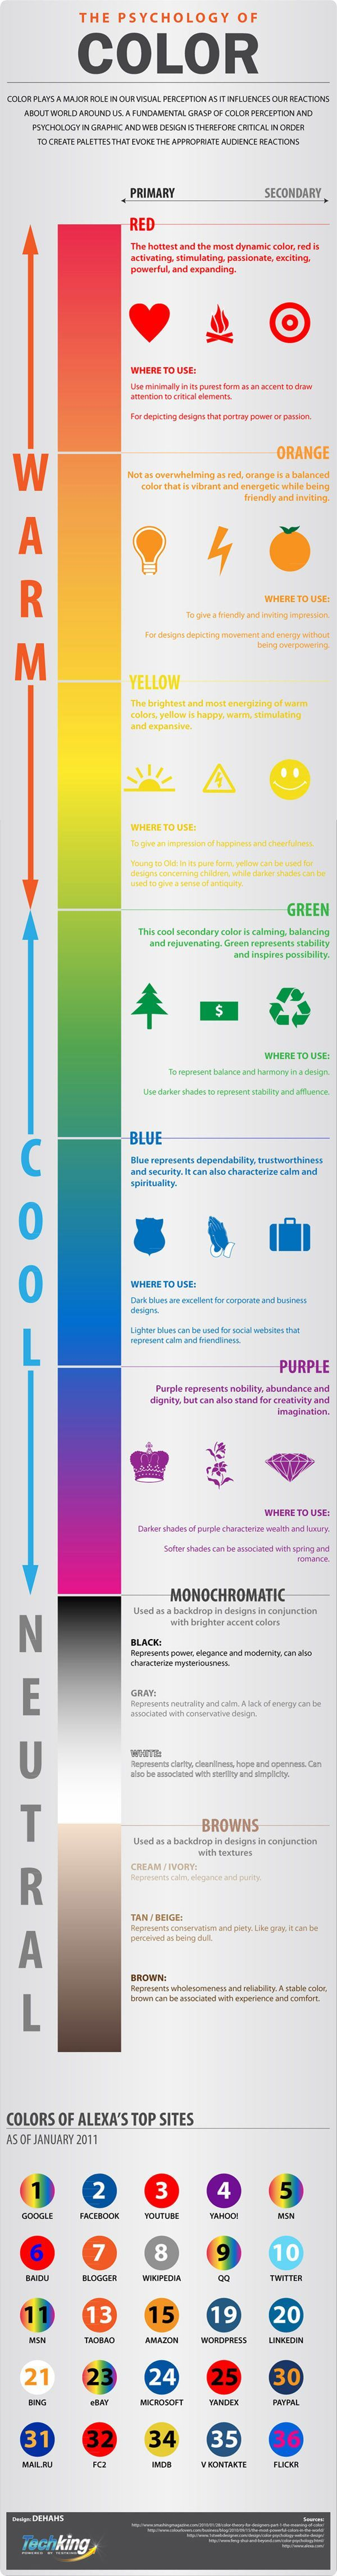 Psicología del color [Infografía] science projects